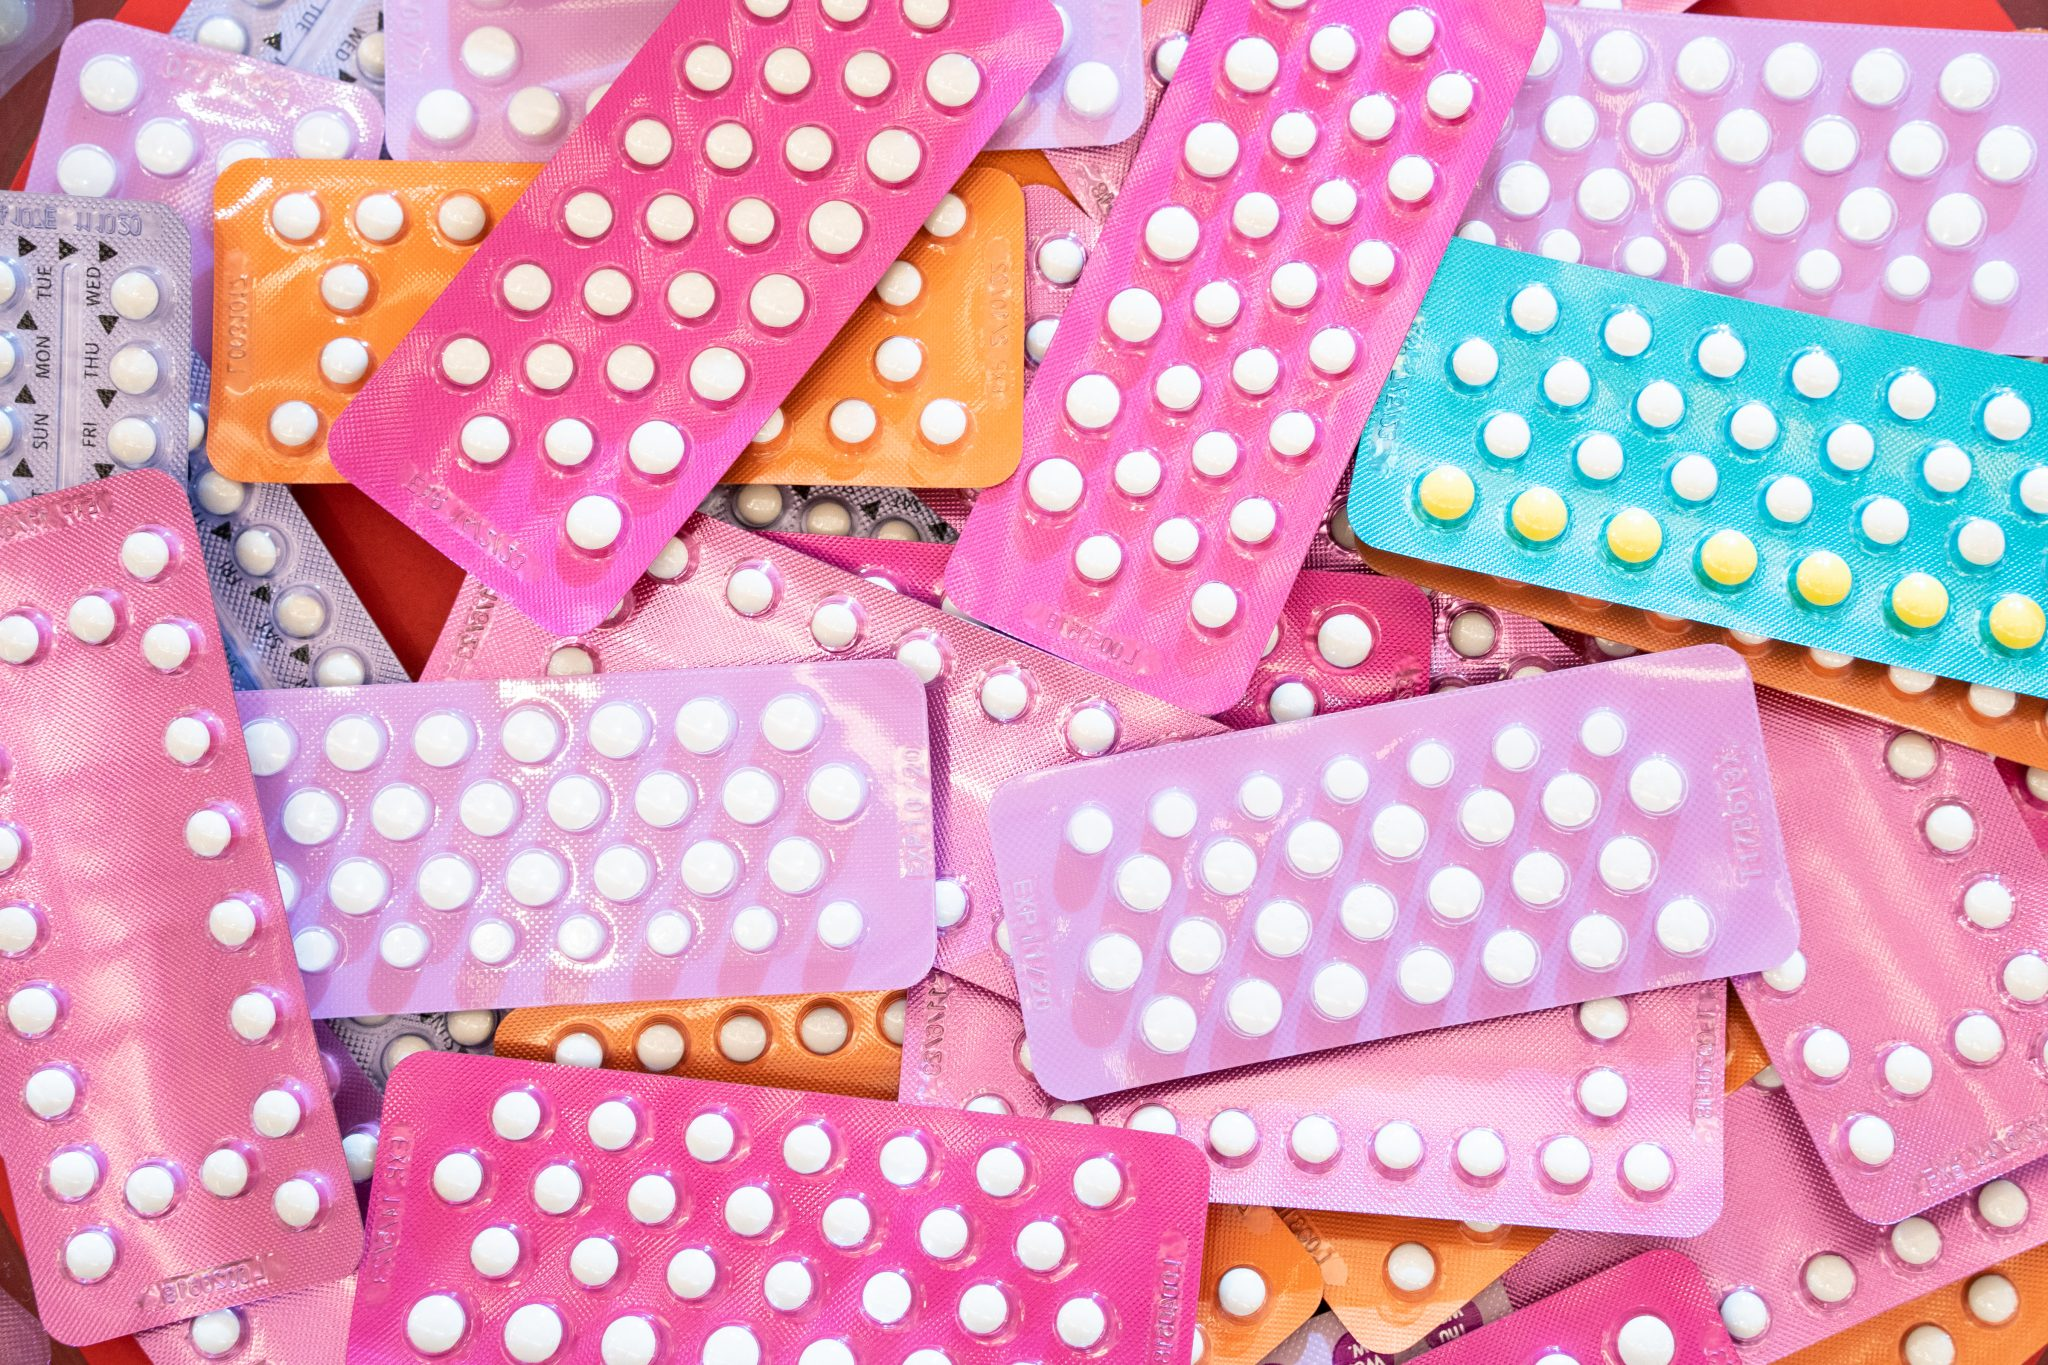 colourful birth control packages